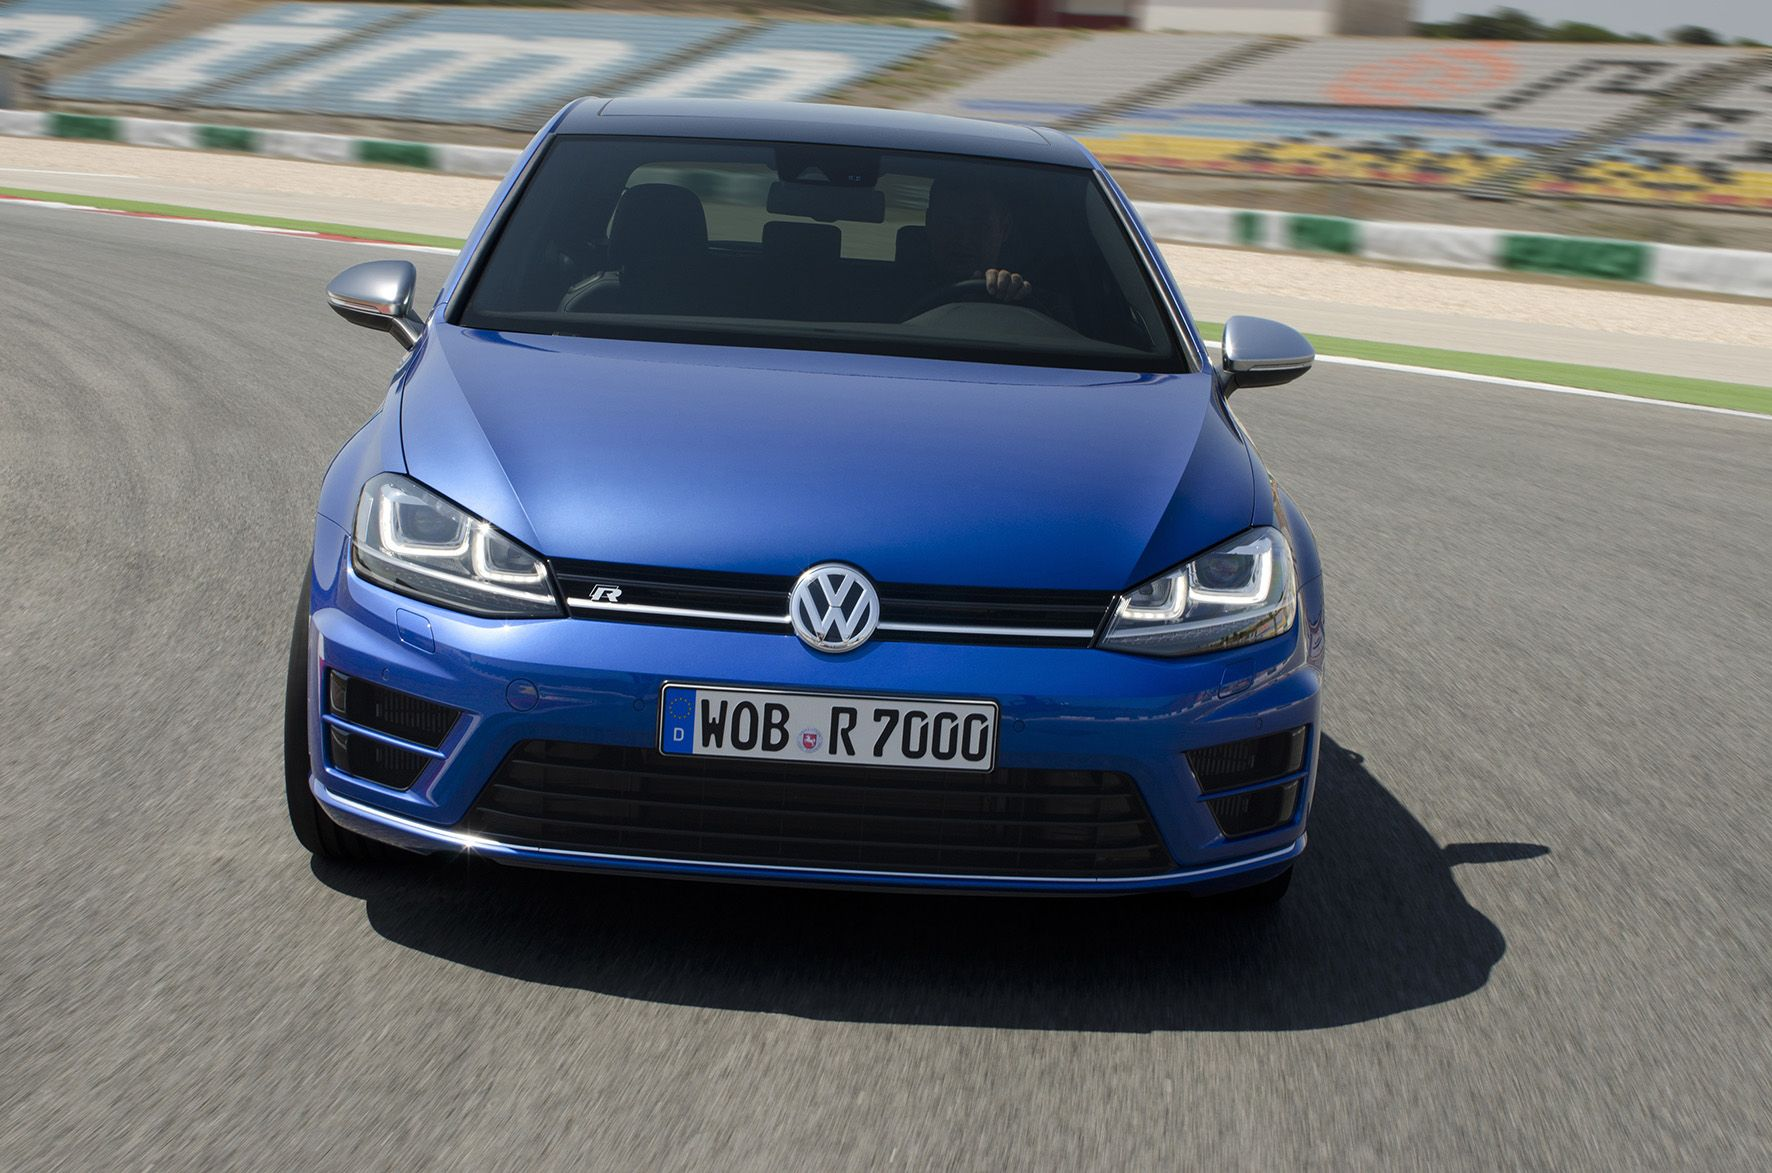 2016 Vw Golf R Review A Sporty Hatch With 292 Hp Volkswagen